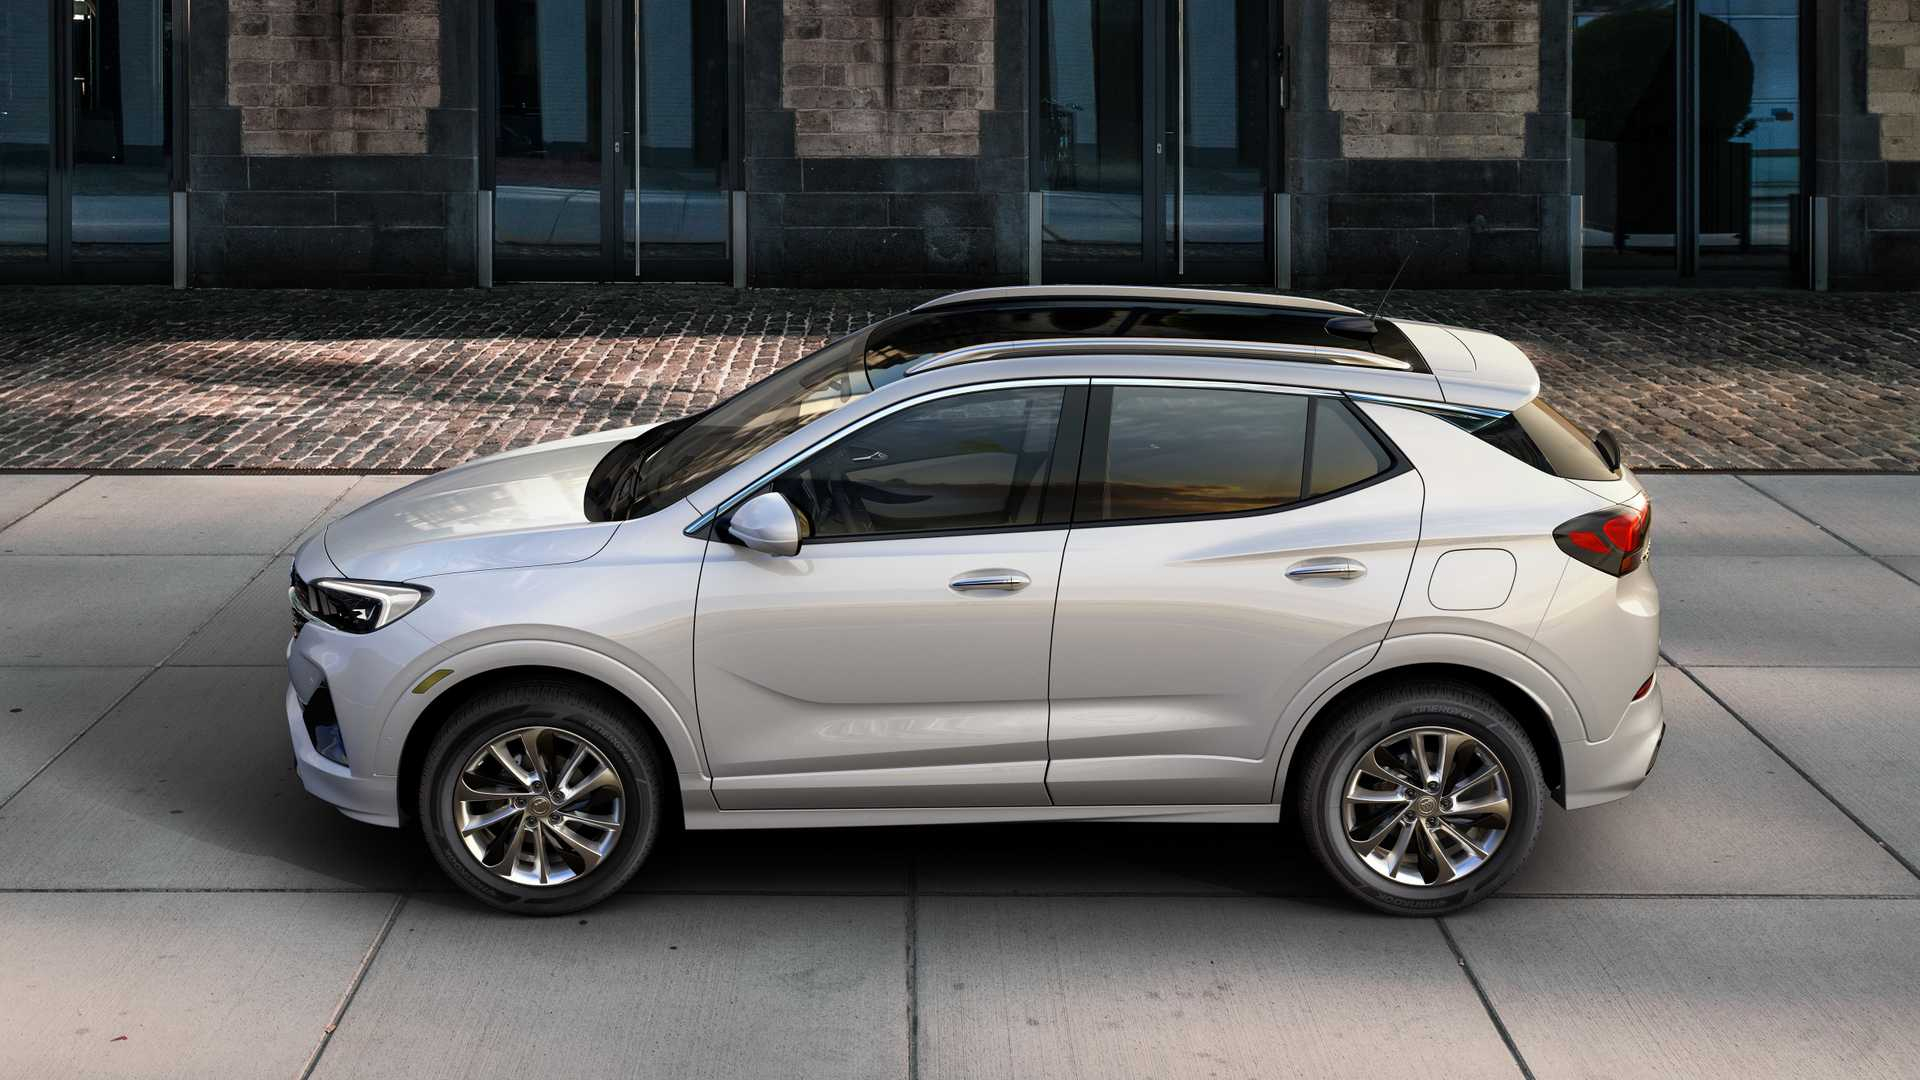 2021 Buick Encore Review, Ratings, Mpg And Prices New 2021 Buick Encore Wheelbase, 0-60, Picture